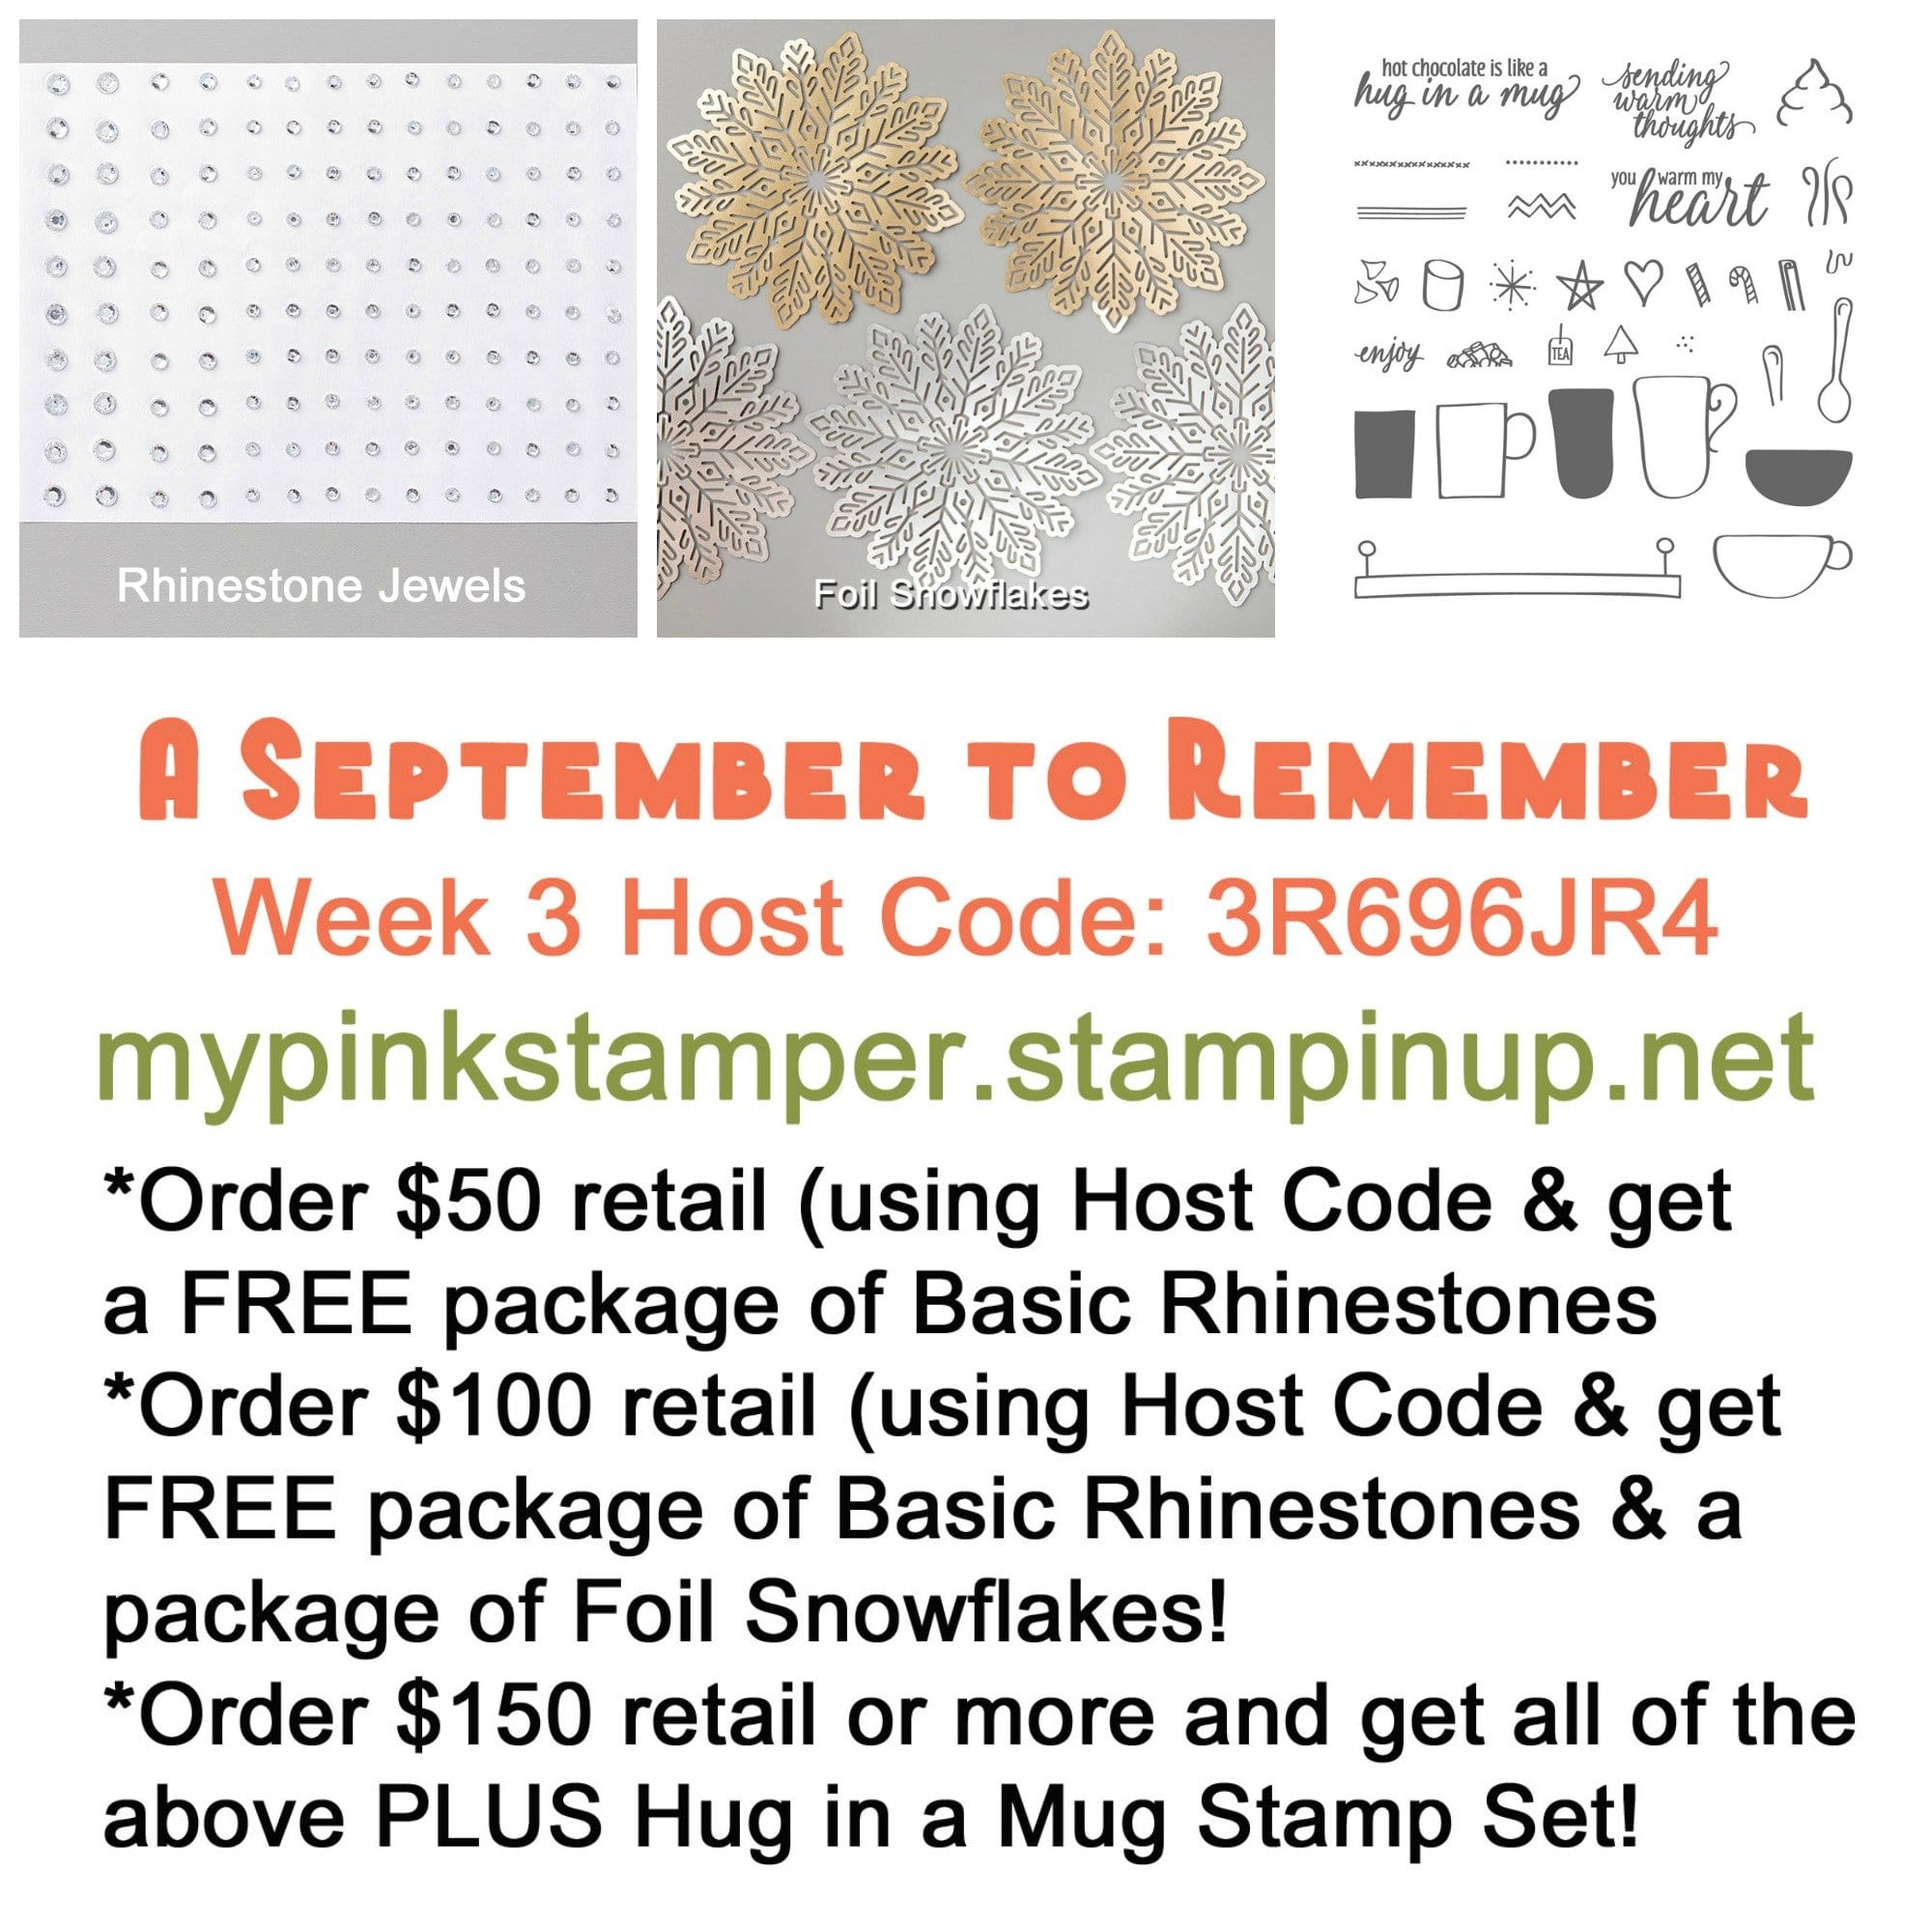 Week 3 of A September to Remember Promotion!